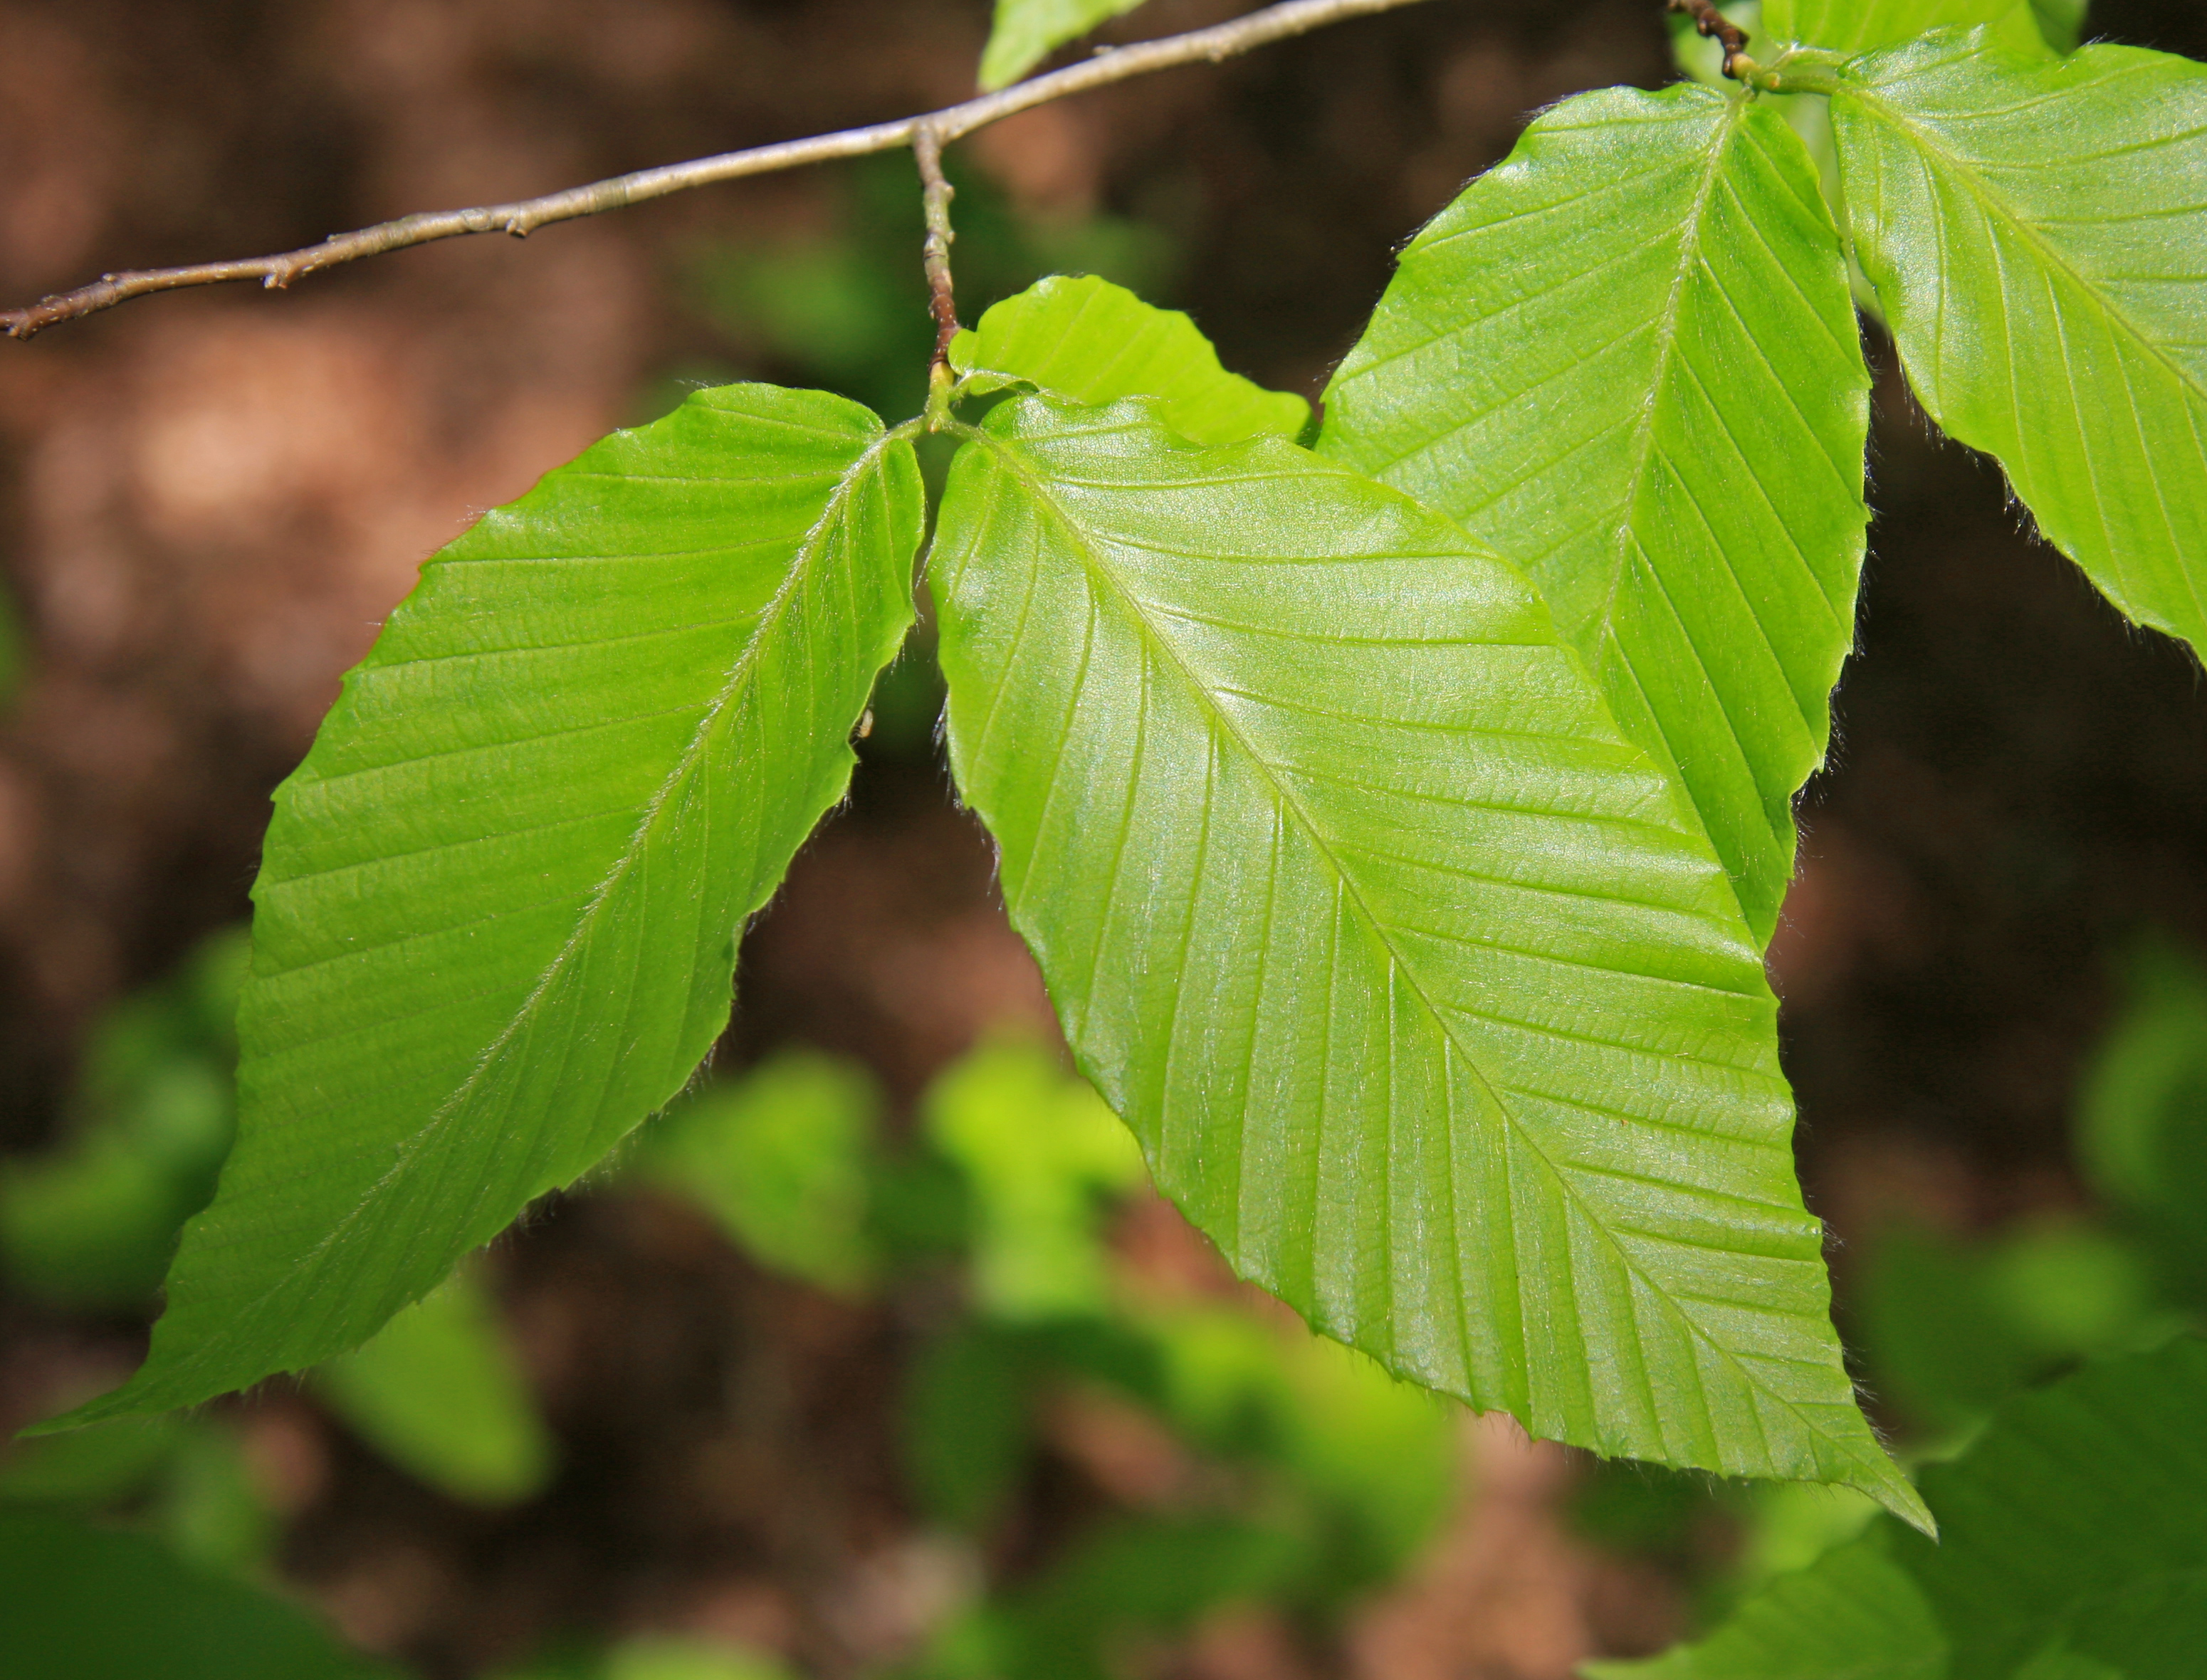 http://upload.wikimedia.org/wikipedia/commons/4/45/Fagus_grandifolia_beech_leaves_close.jpg